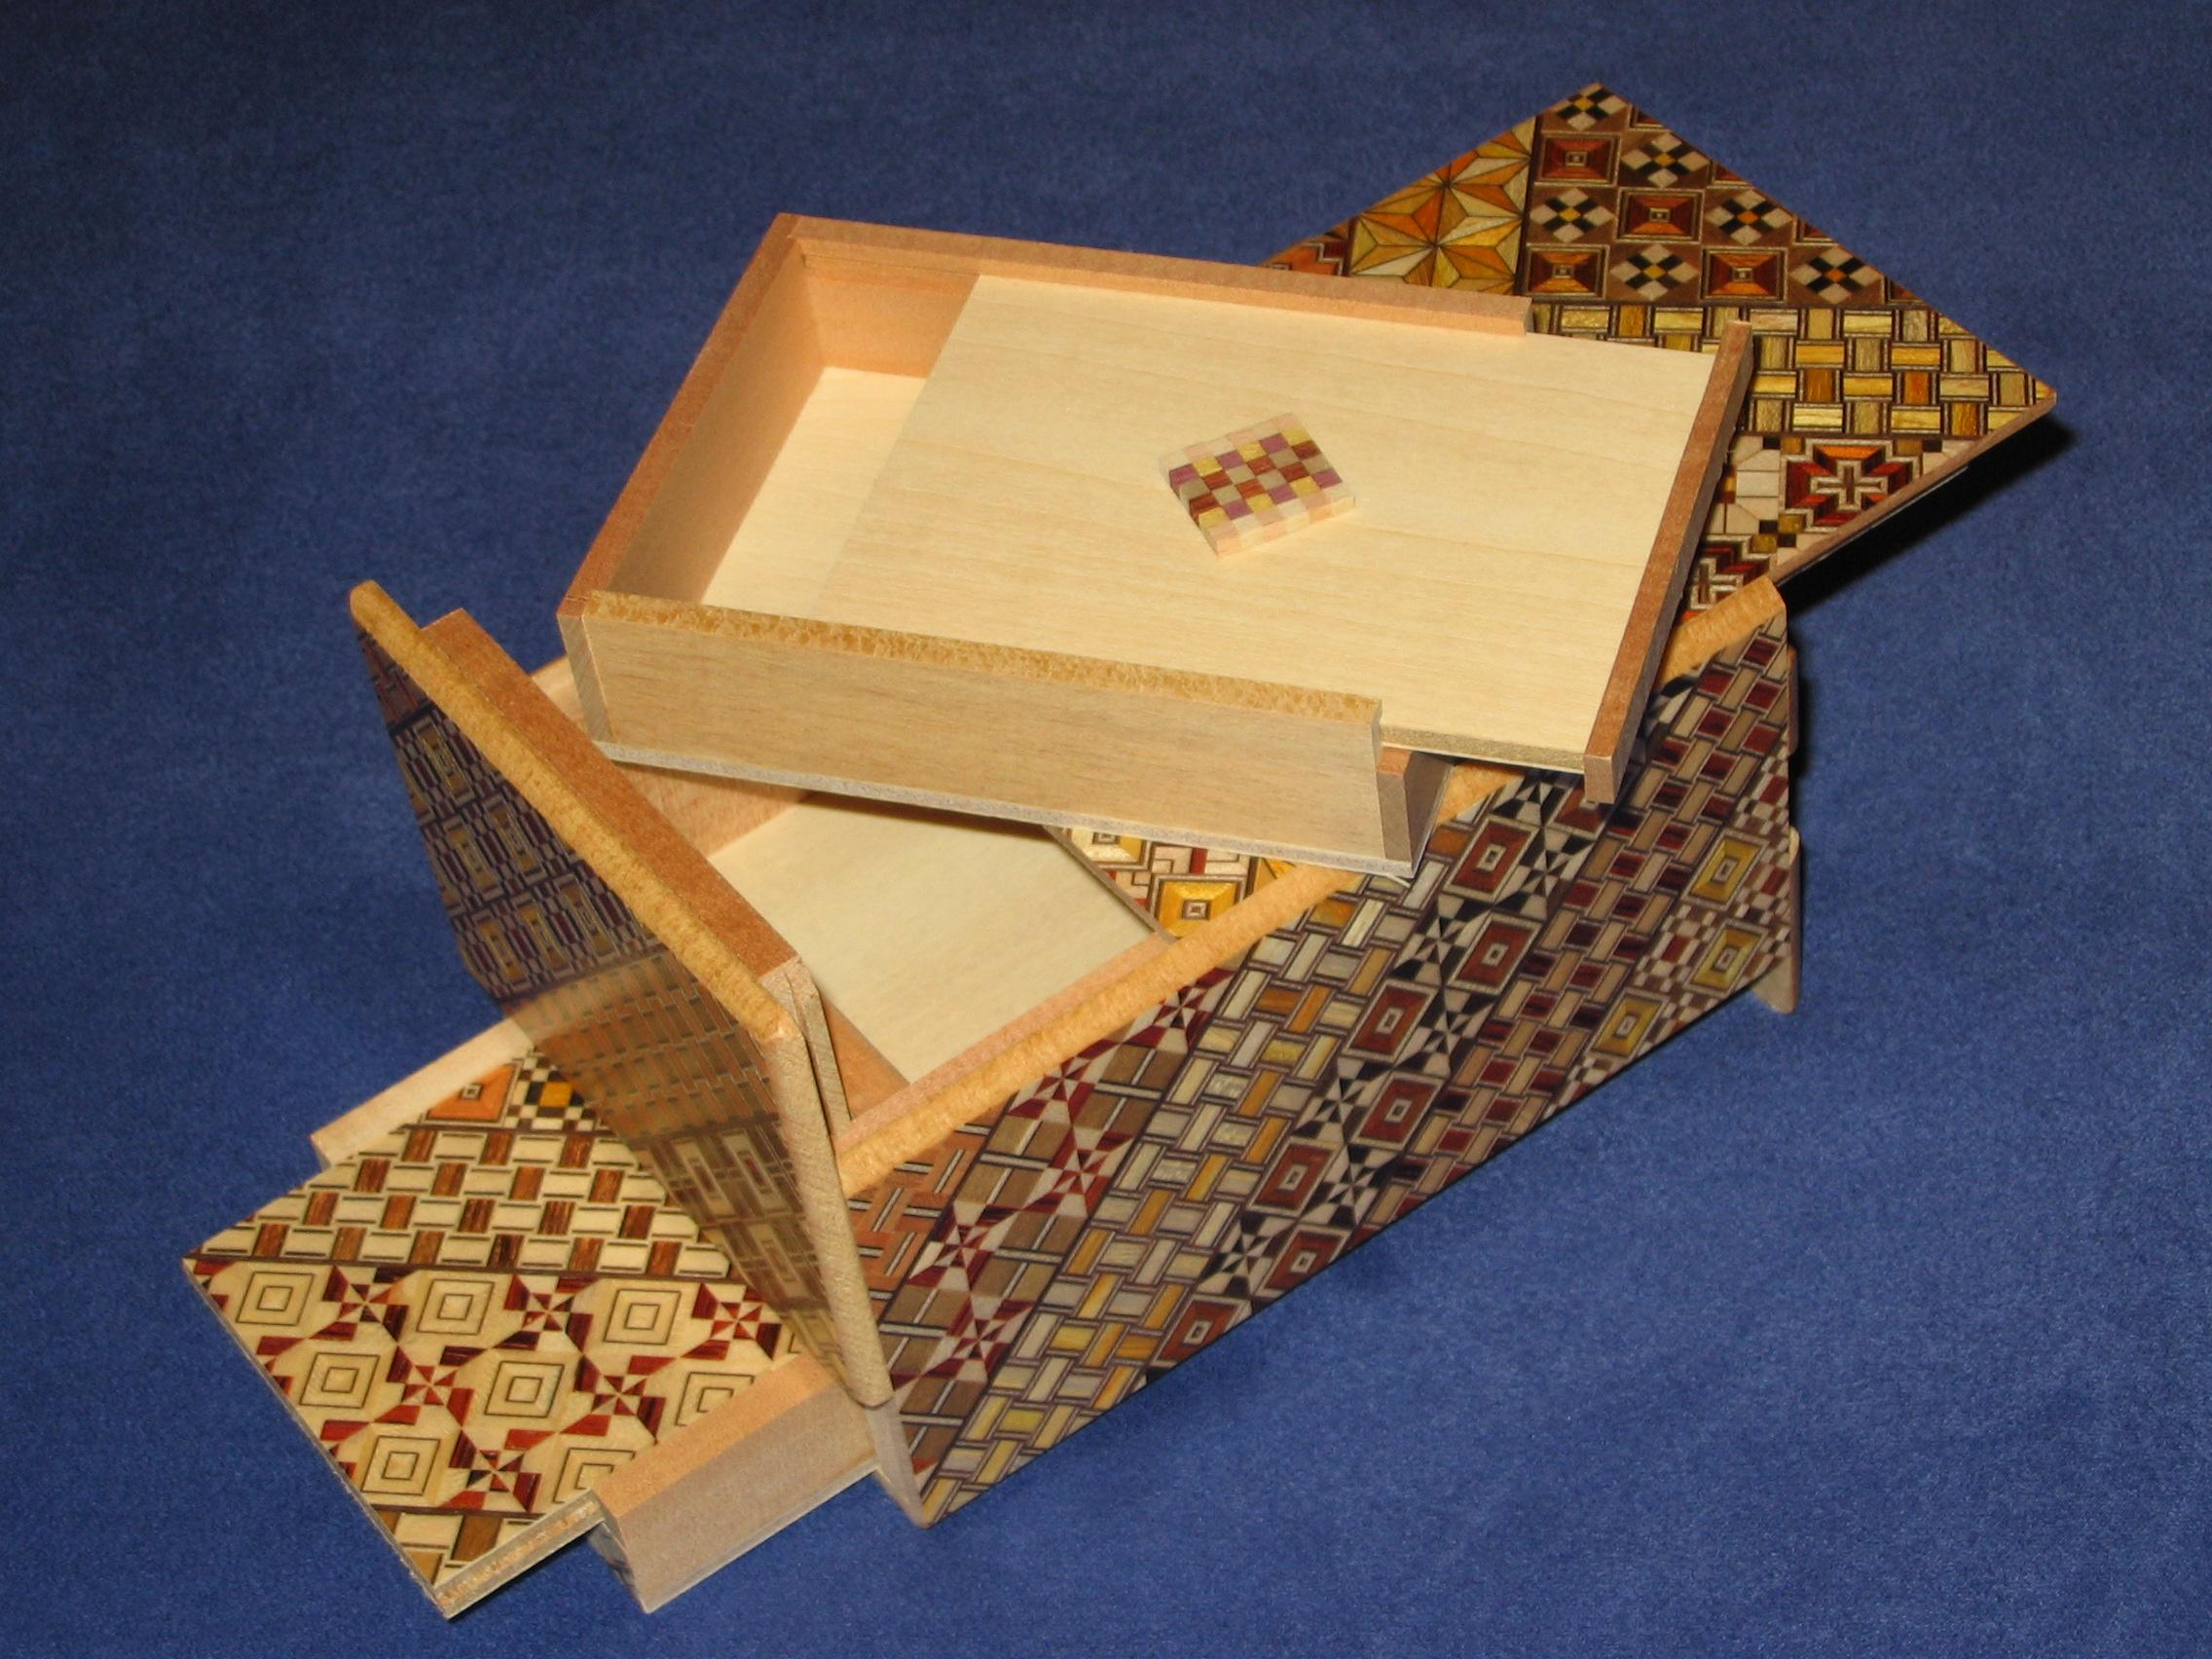 Japanese Secret Puzzle Box Wooden Wiring Diagrams Circuit Board Maker Of Shenzhen Qld20 Qld China Boxes Reblog Compartment Engaved